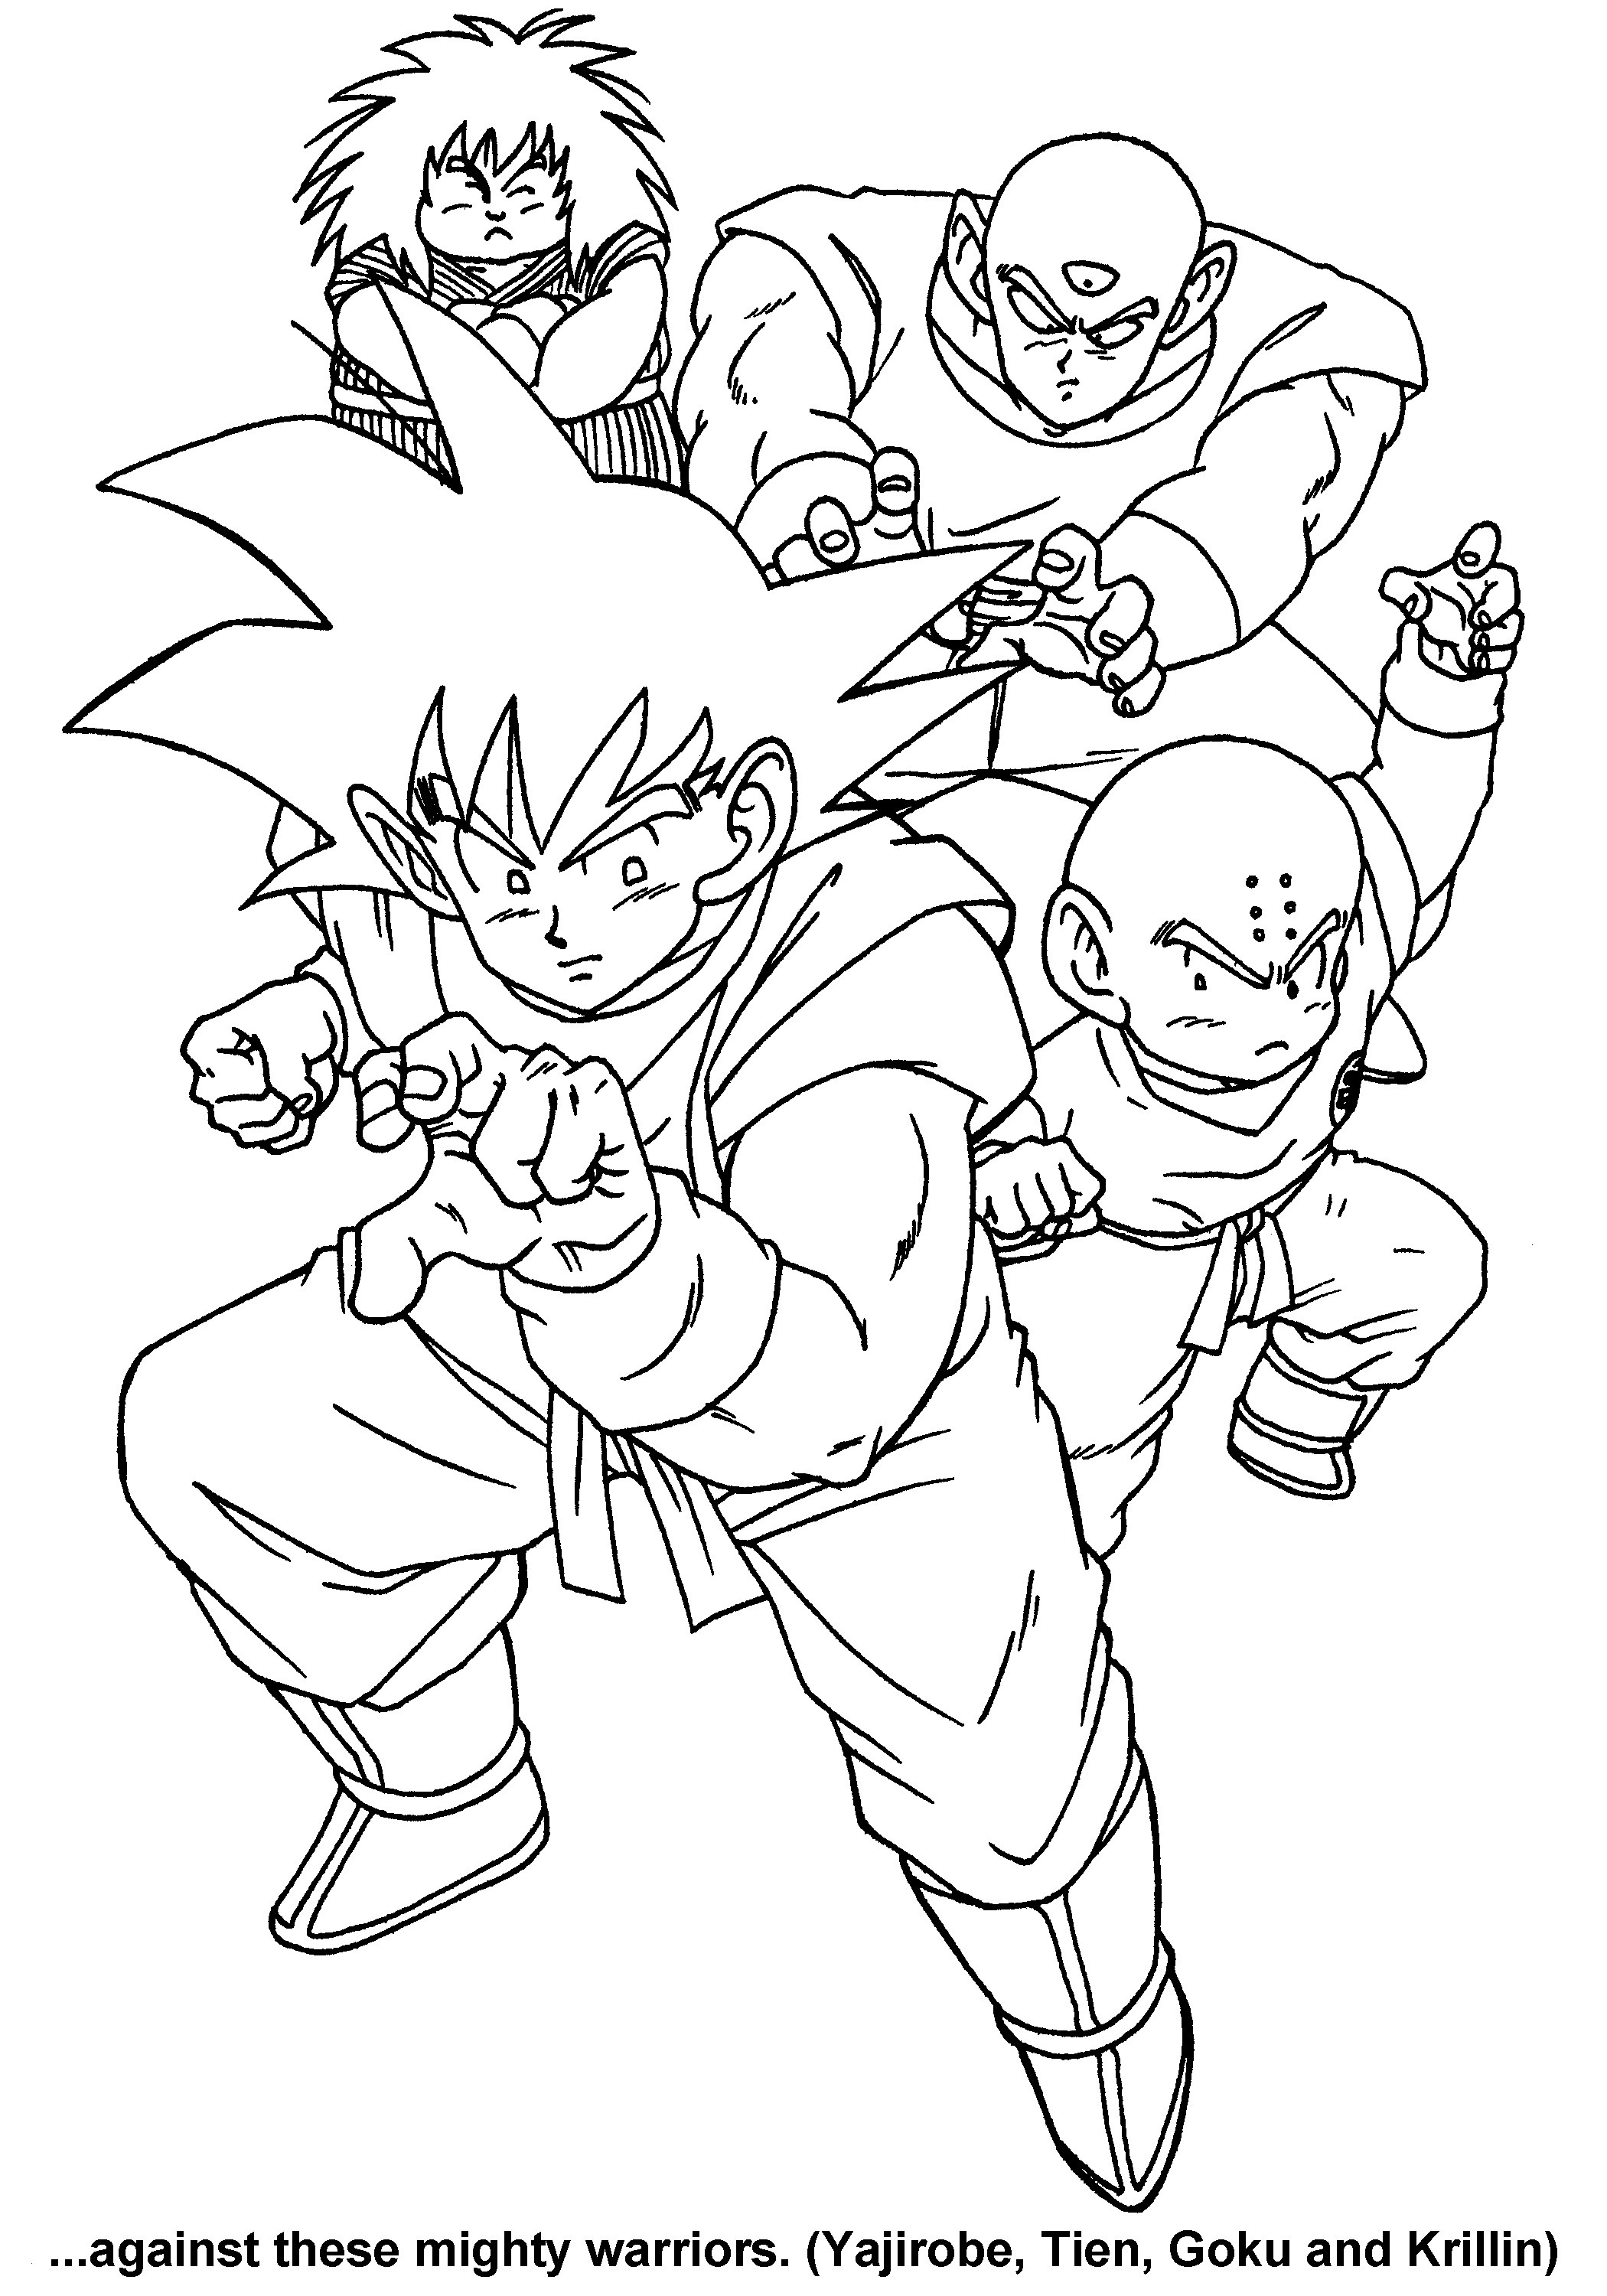 coloring dragon ball super best coloring pages site super saiyan god super saiyan coloring dragon ball super